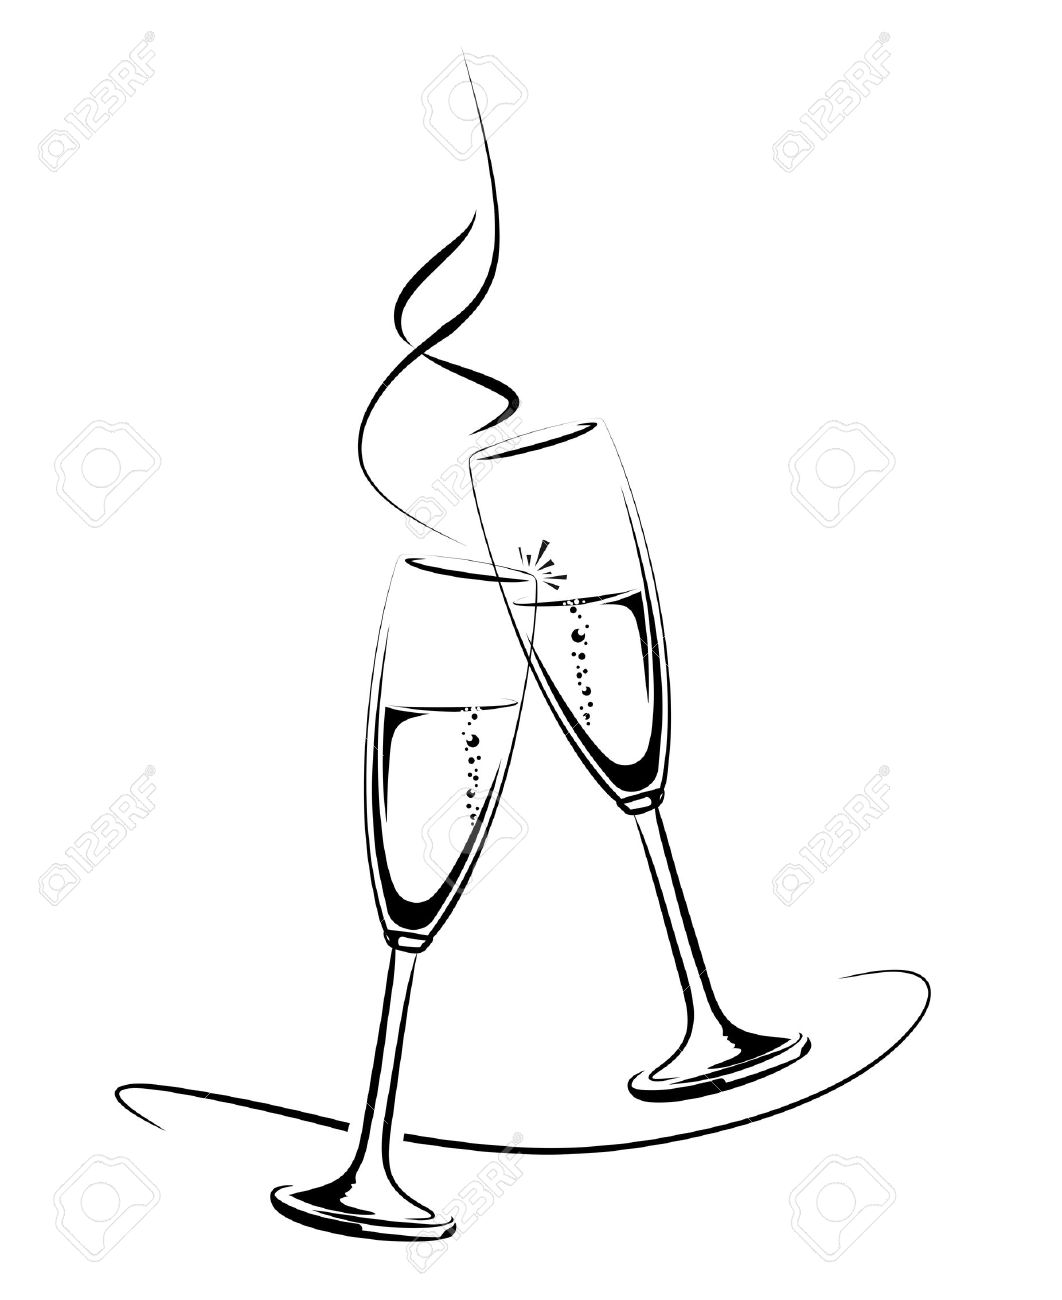 graphic transparent download Champaign clipart champagne clink. .